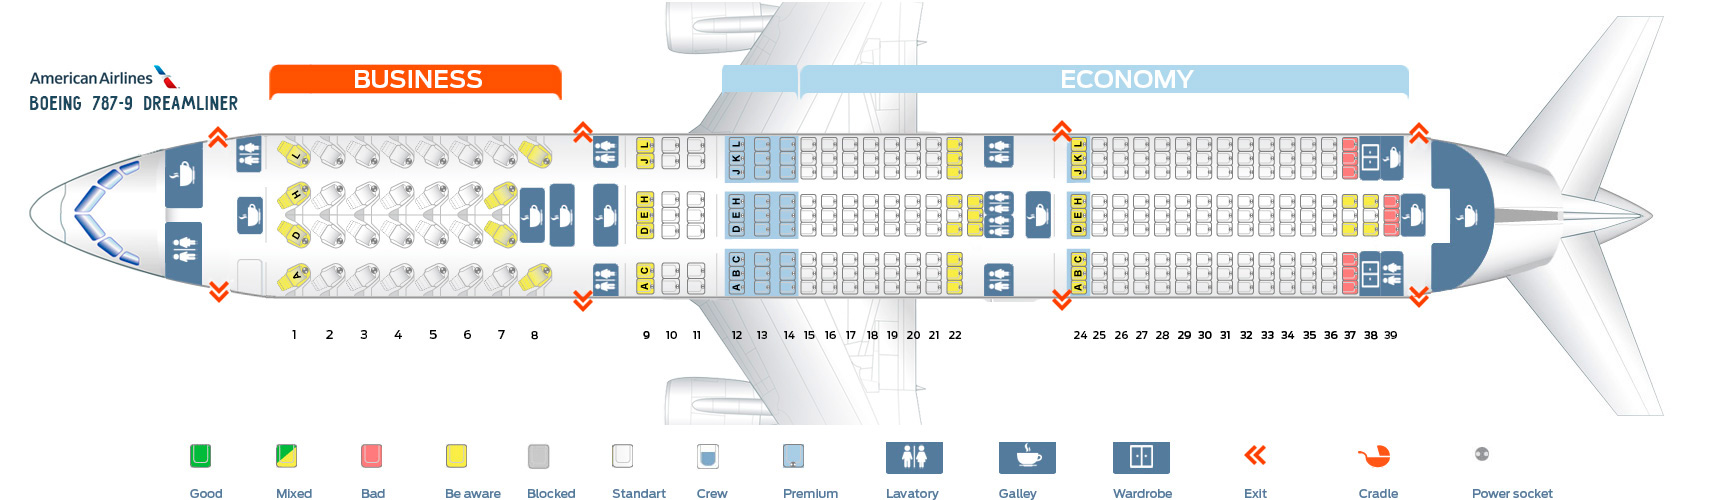 American Airlines Seat Map Boeing 787-900